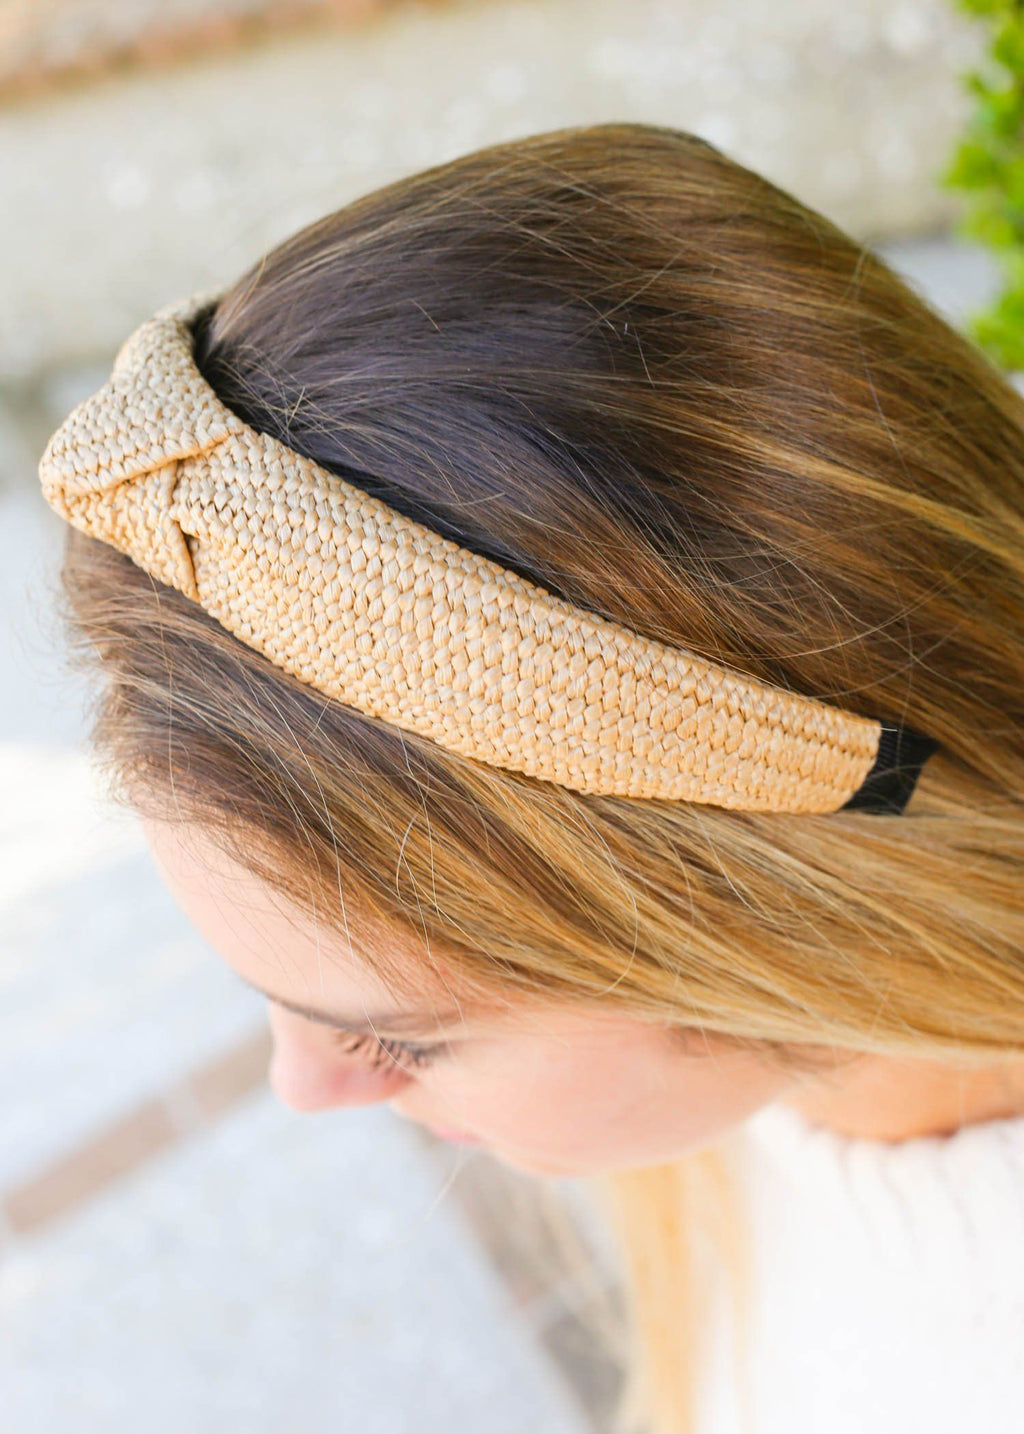 Waco Woven Rafia Natural Headband - Caroline Hill